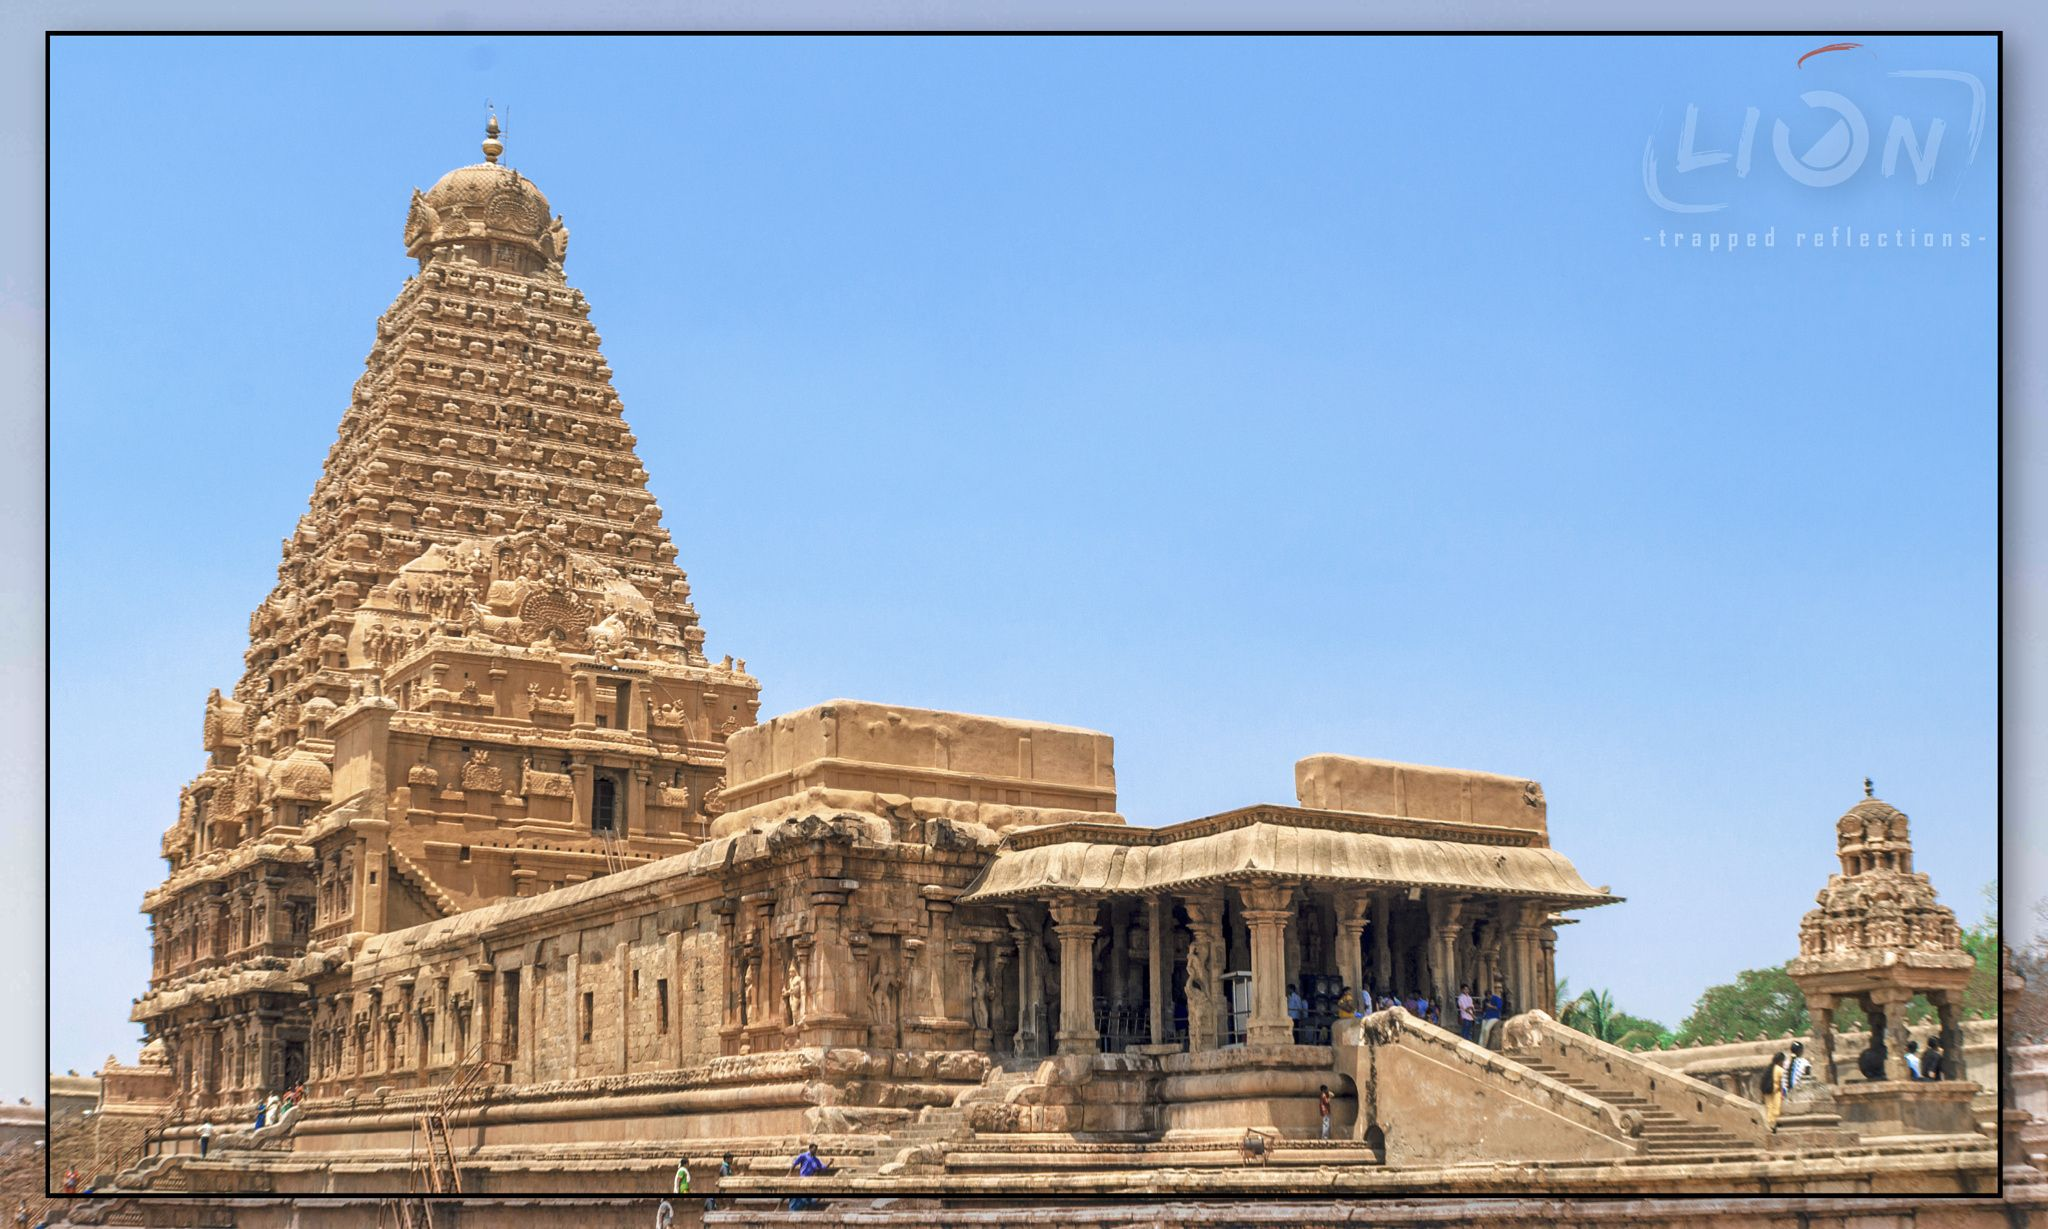 Brihadeeswarar Temple (Periya Kovil) | Thanjavur, Tamil Nadu, India |  Thanjavur, Unesco world heritage site, Tamil nadu